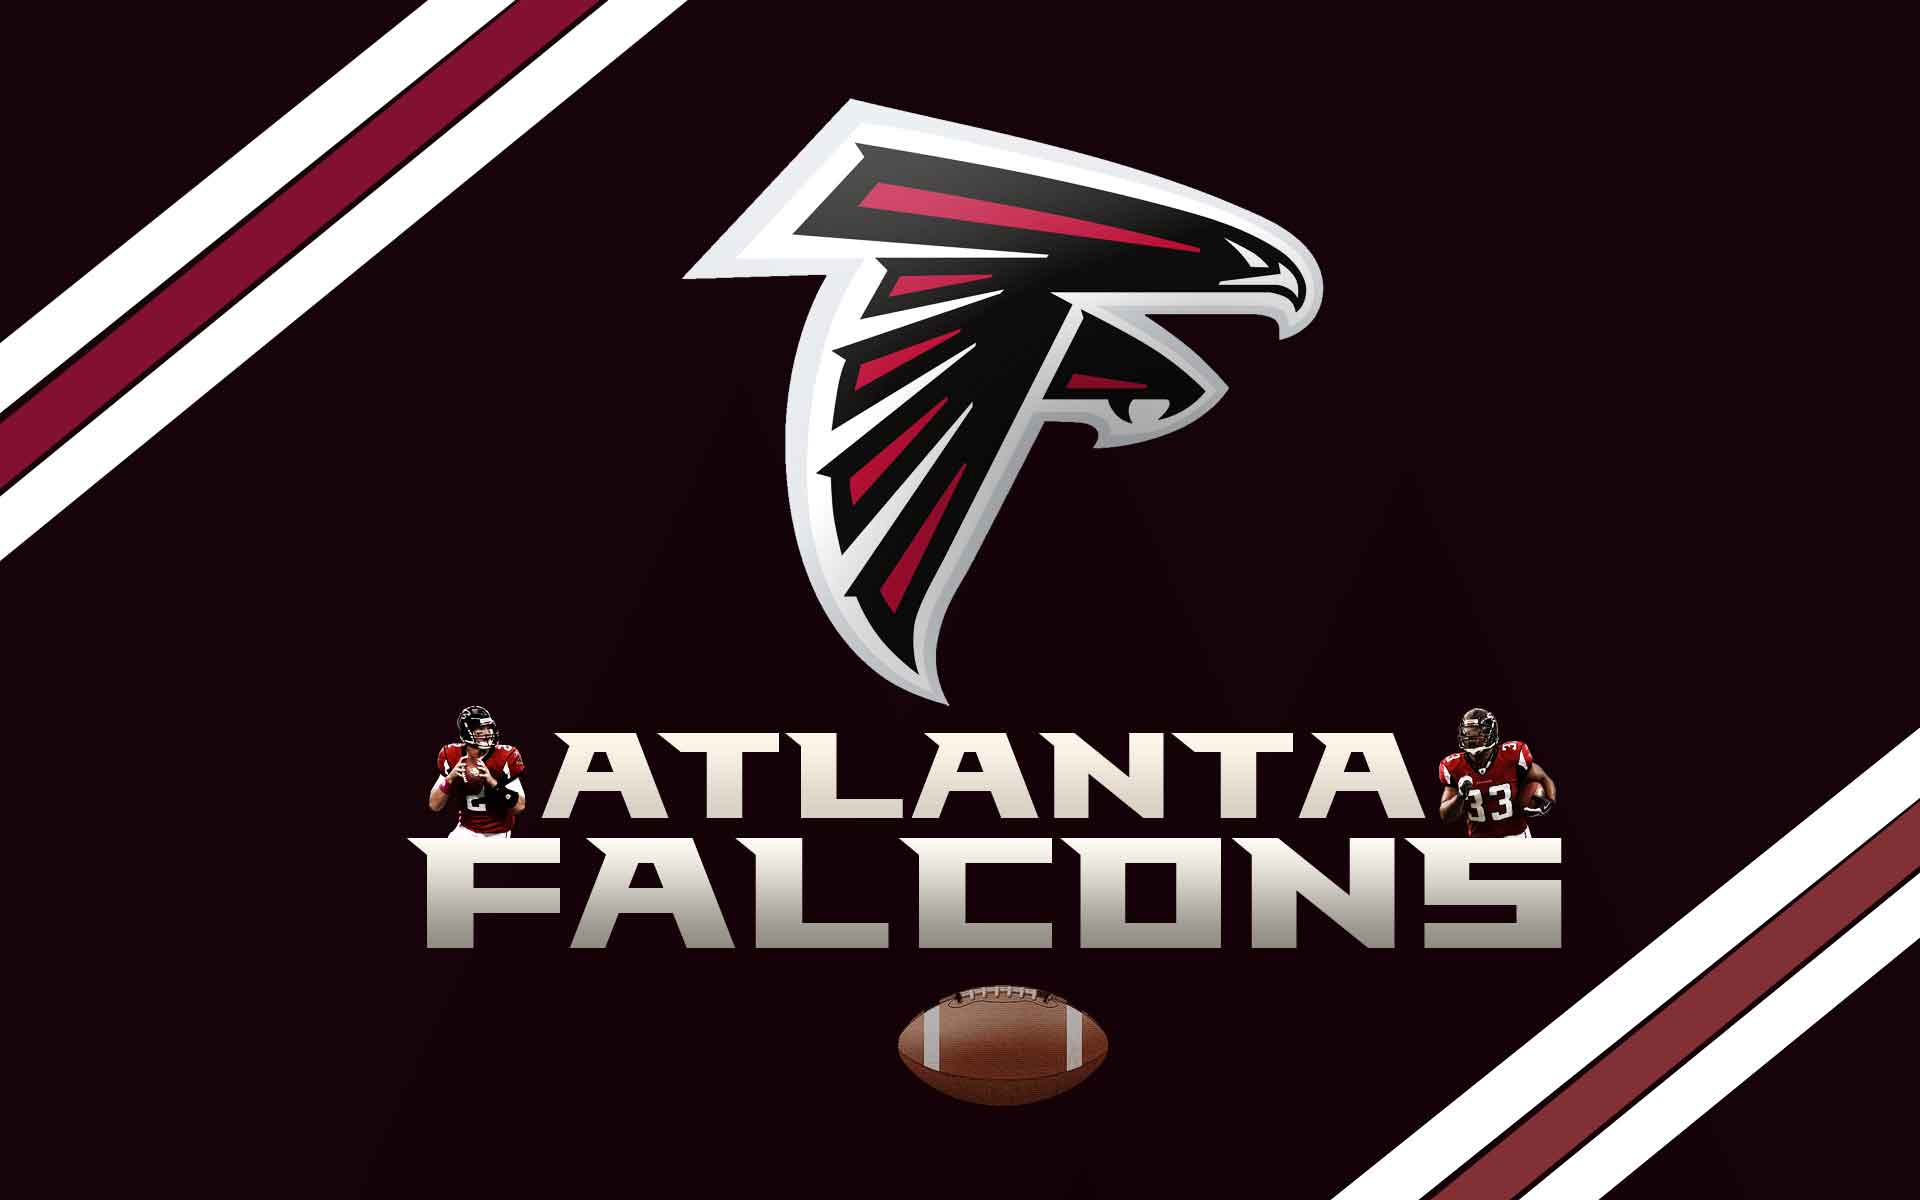 Printable Atlanta Falcons Logos